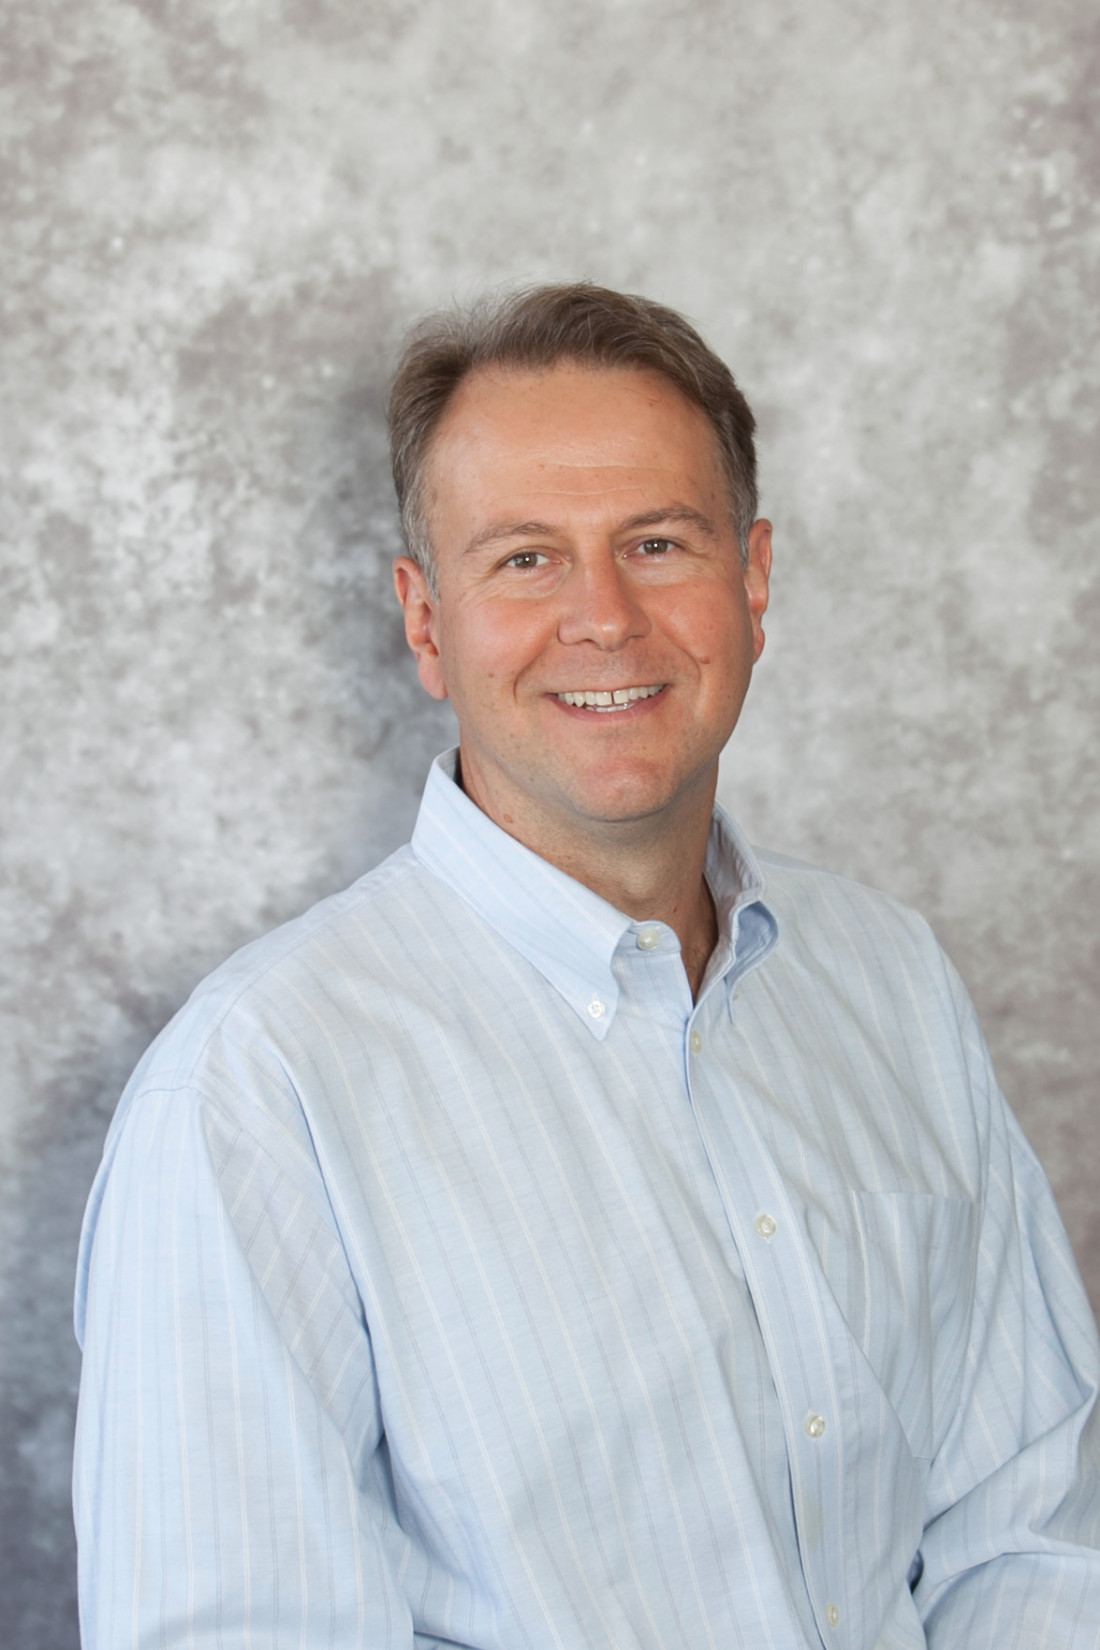 Southfield Chiropractor, Dr. Kevin ODell